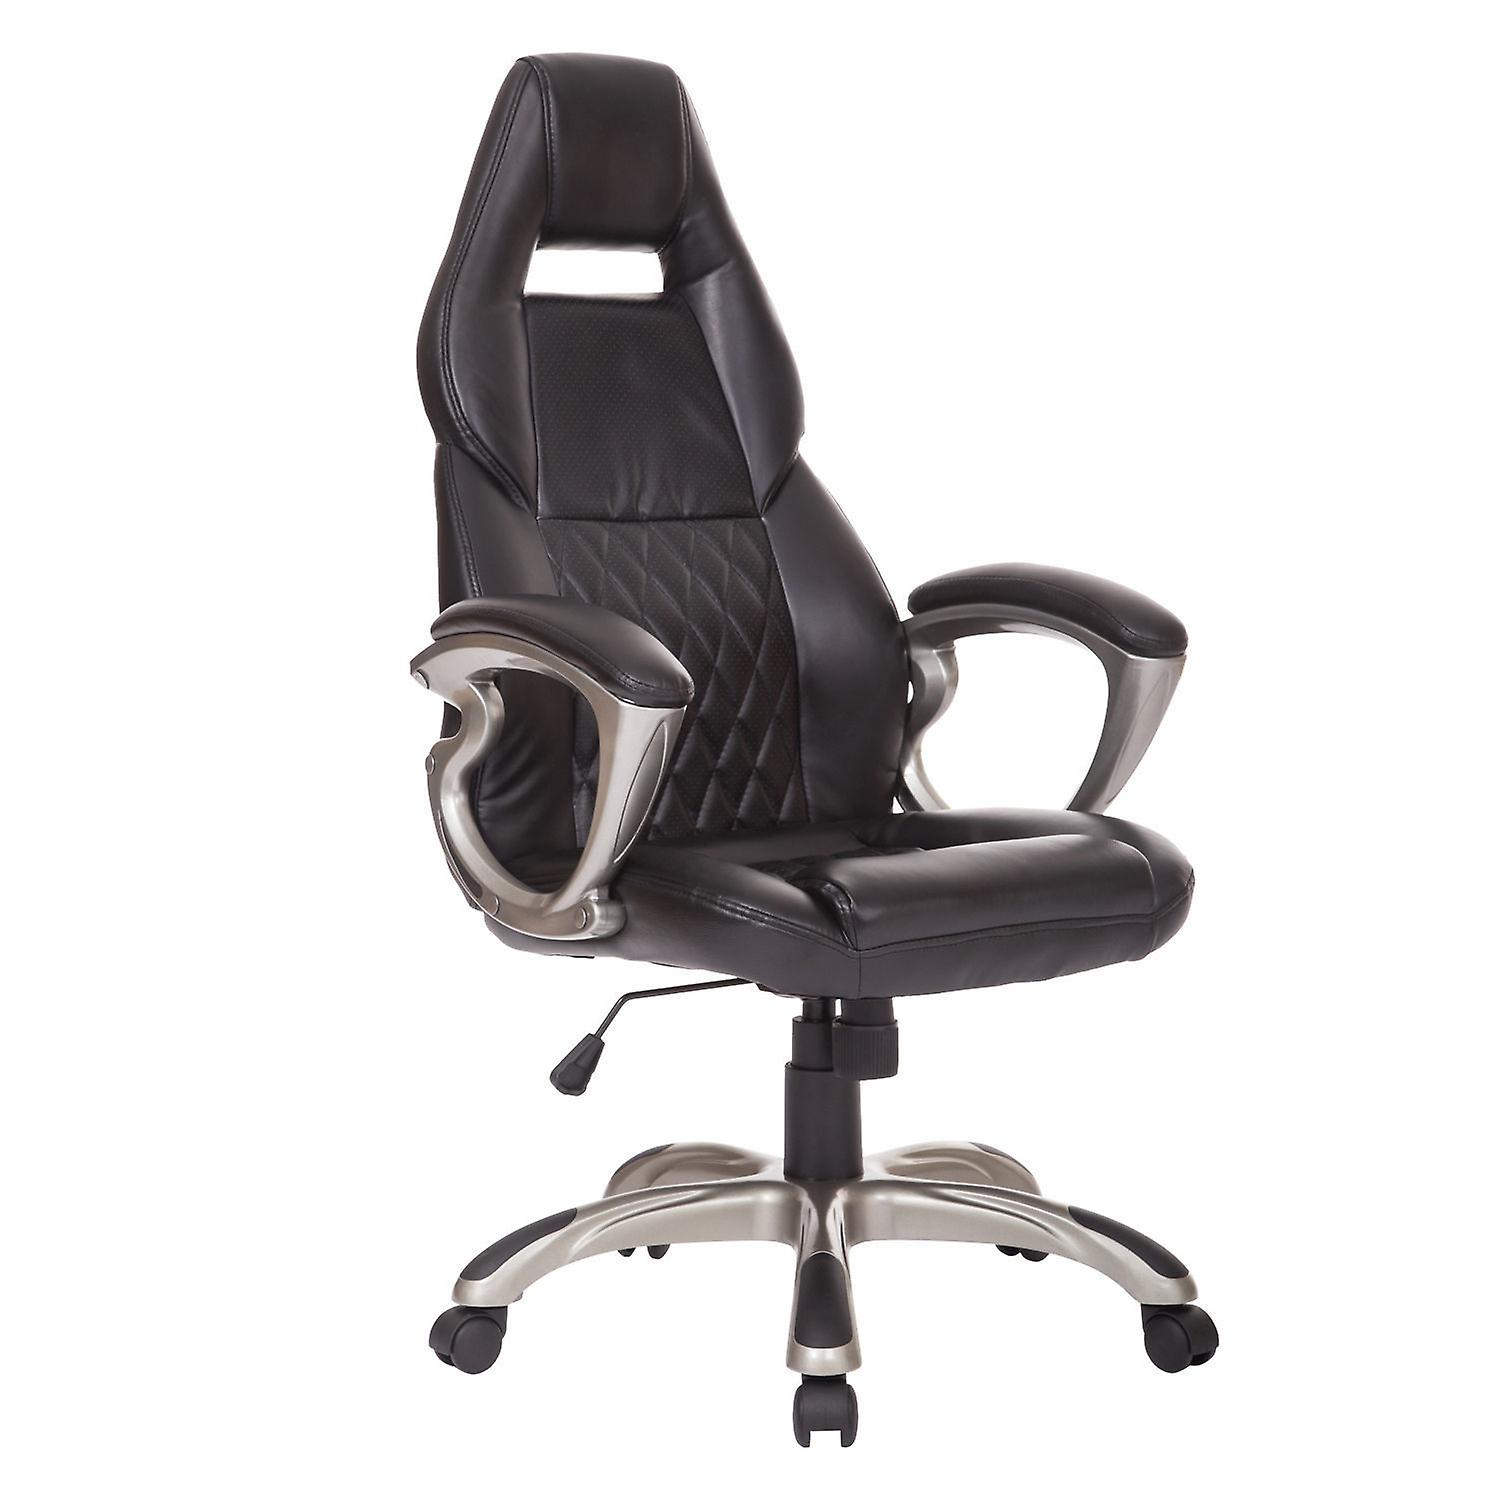 Amazing Homcom Racing Gaming Sports Chair Swivel Desk Chair Executive Leather Office Chair Computer Pc Chairs Height Adjustable Armchair Machost Co Dining Chair Design Ideas Machostcouk